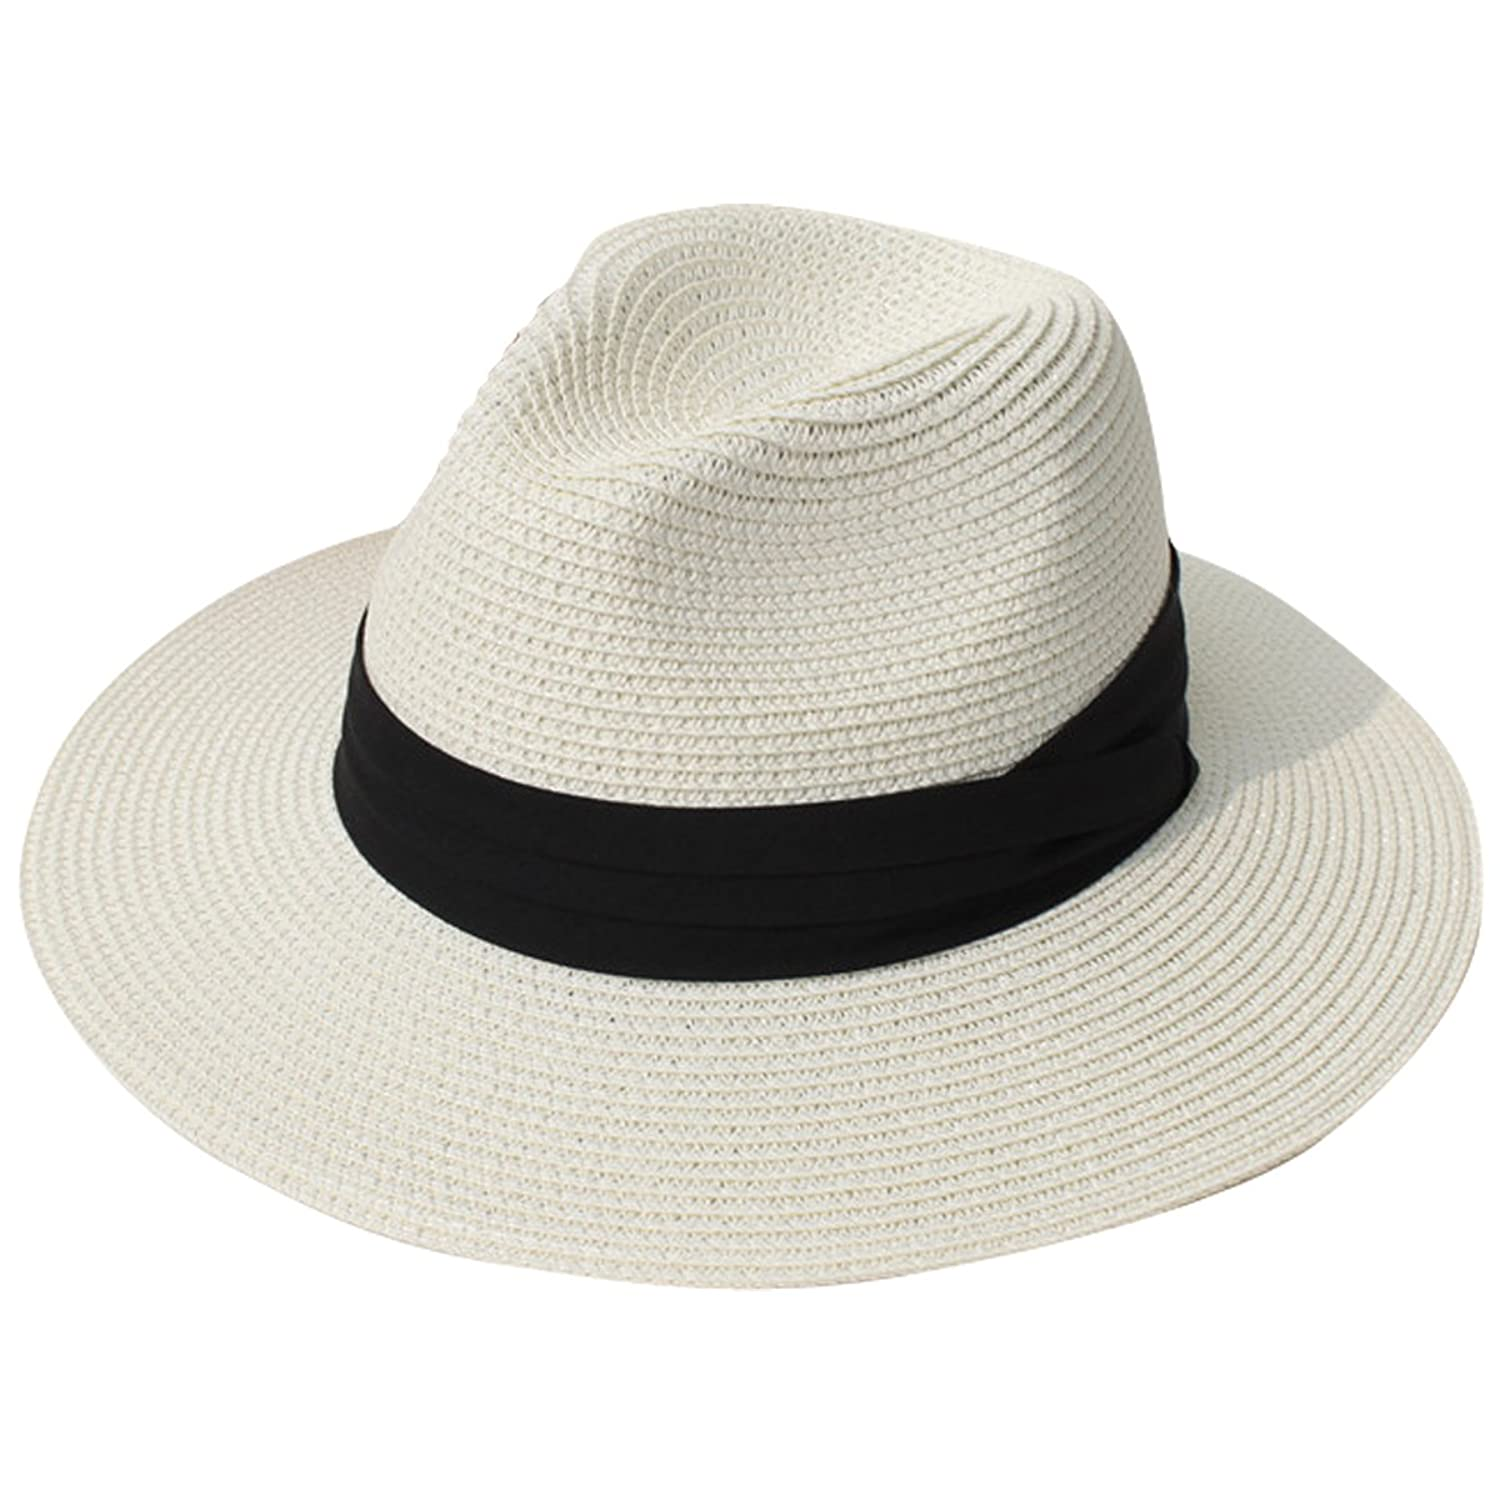 e0d44bf9380 Top 10 wholesale Beach Hat - Chinabrands.com